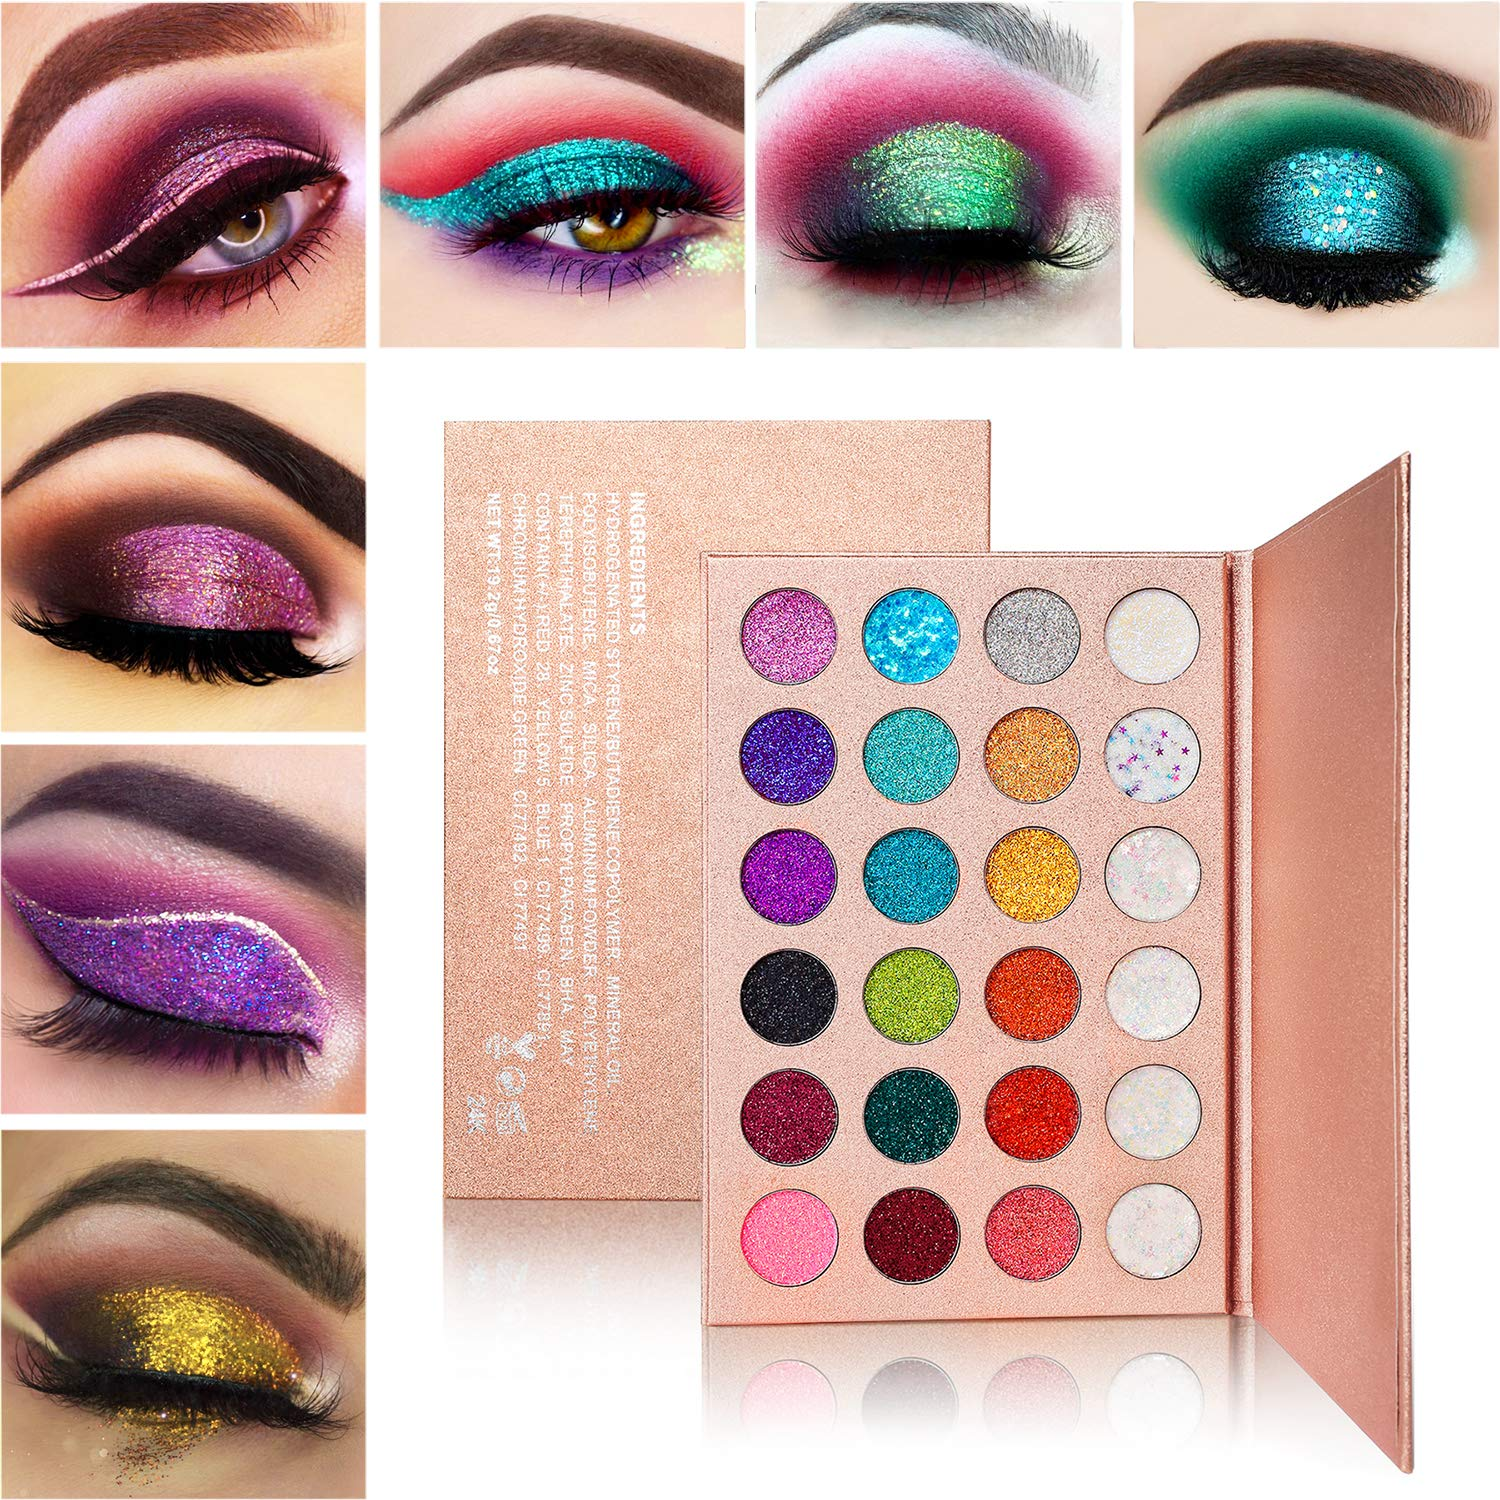 Glitter Eyeshadow Palette Makeup,Afflano Highly Pigmented Glitter Eyeshadow Pallet,Professional Pink Blue Green Red Gold Purple Long Lasting Waterproof (Glitter Eyeshadow Palette 24 Colors)